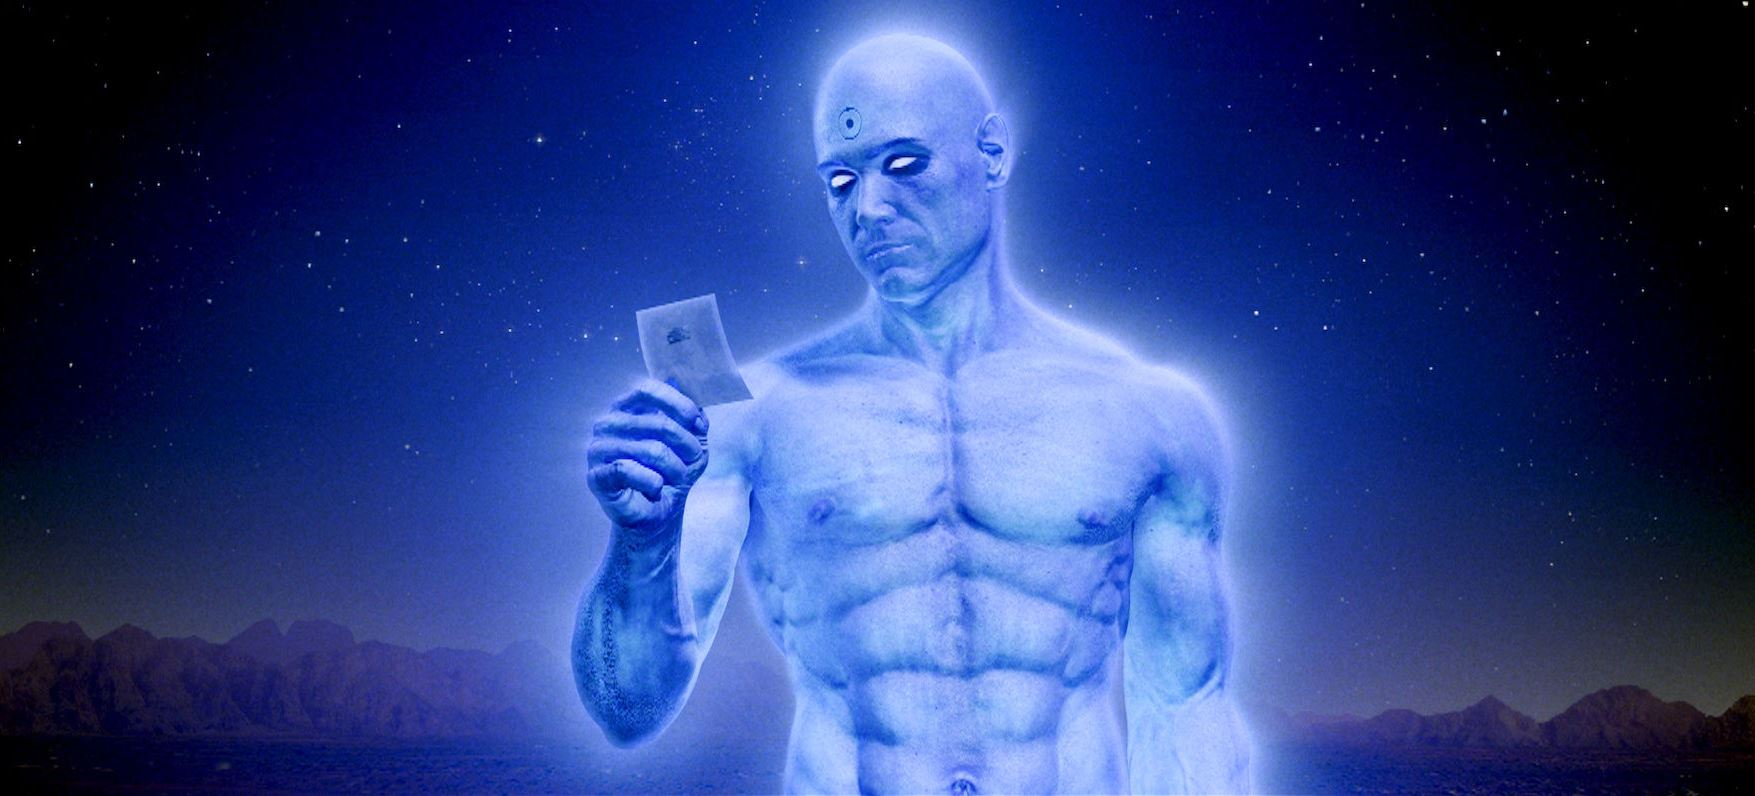 Billy Crudup as Dr Manhattan in Watchmen (2009)